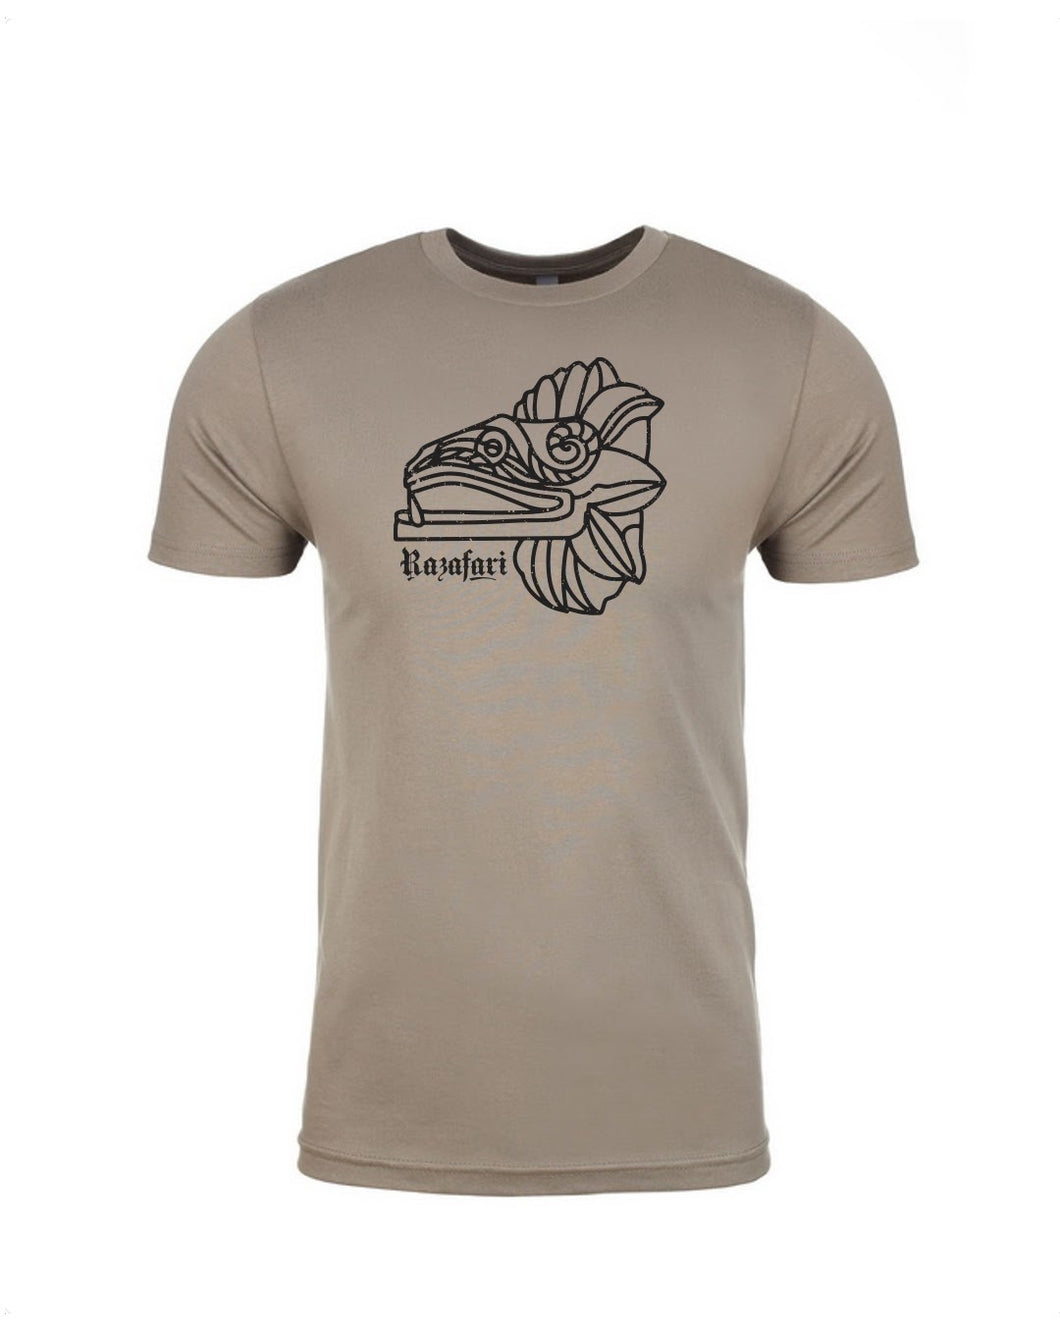 Feathered Serpent Unisex T-shirt - Warm Grey